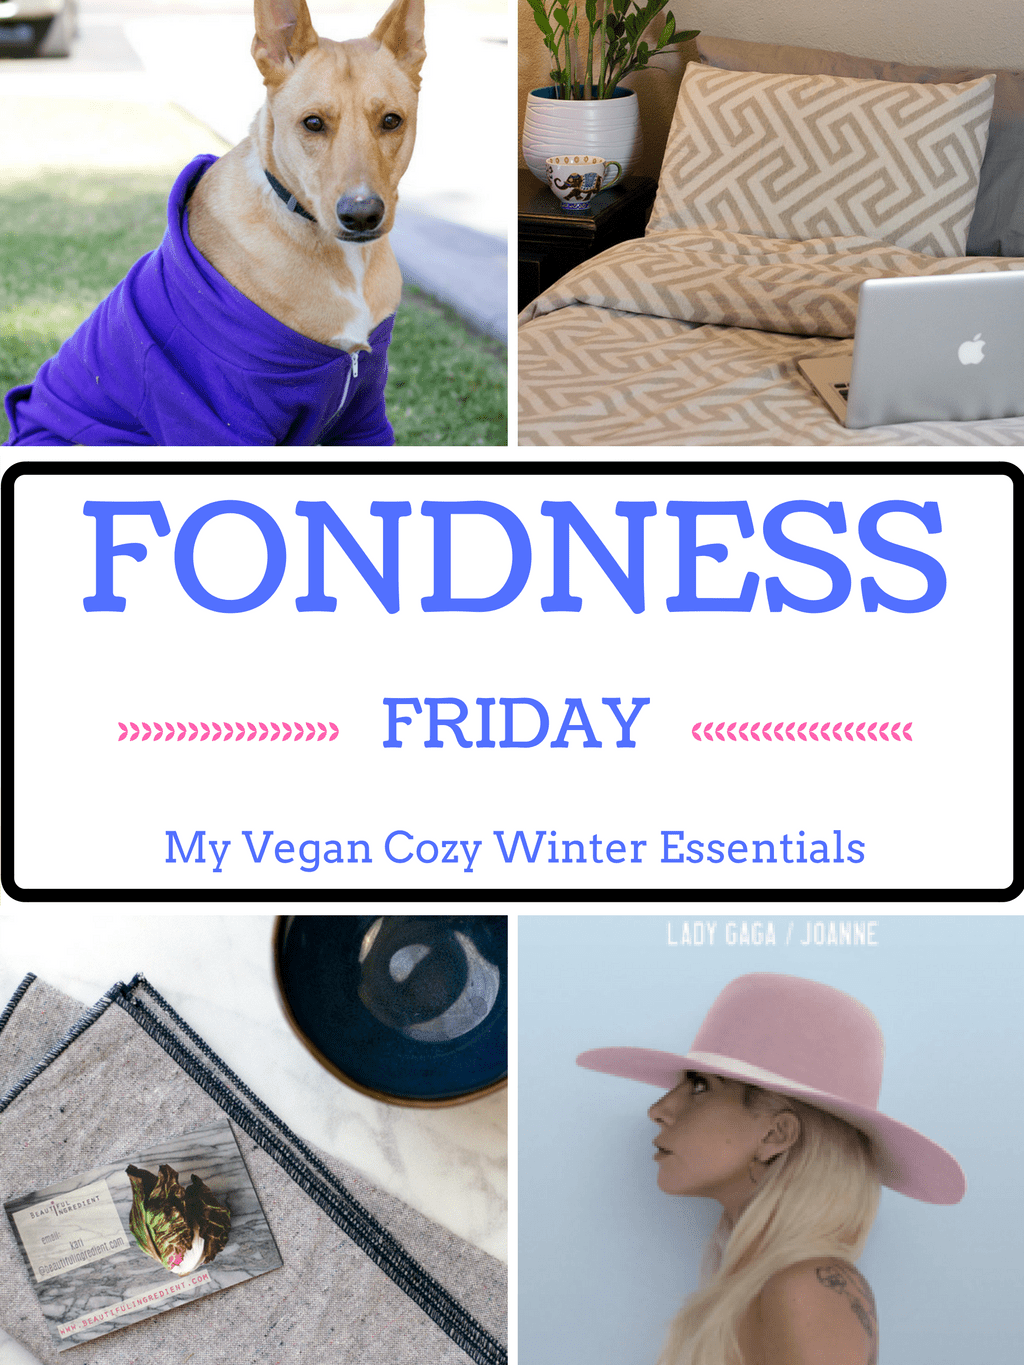 Fondness Friday: Cozy Vegan Winter Essentials